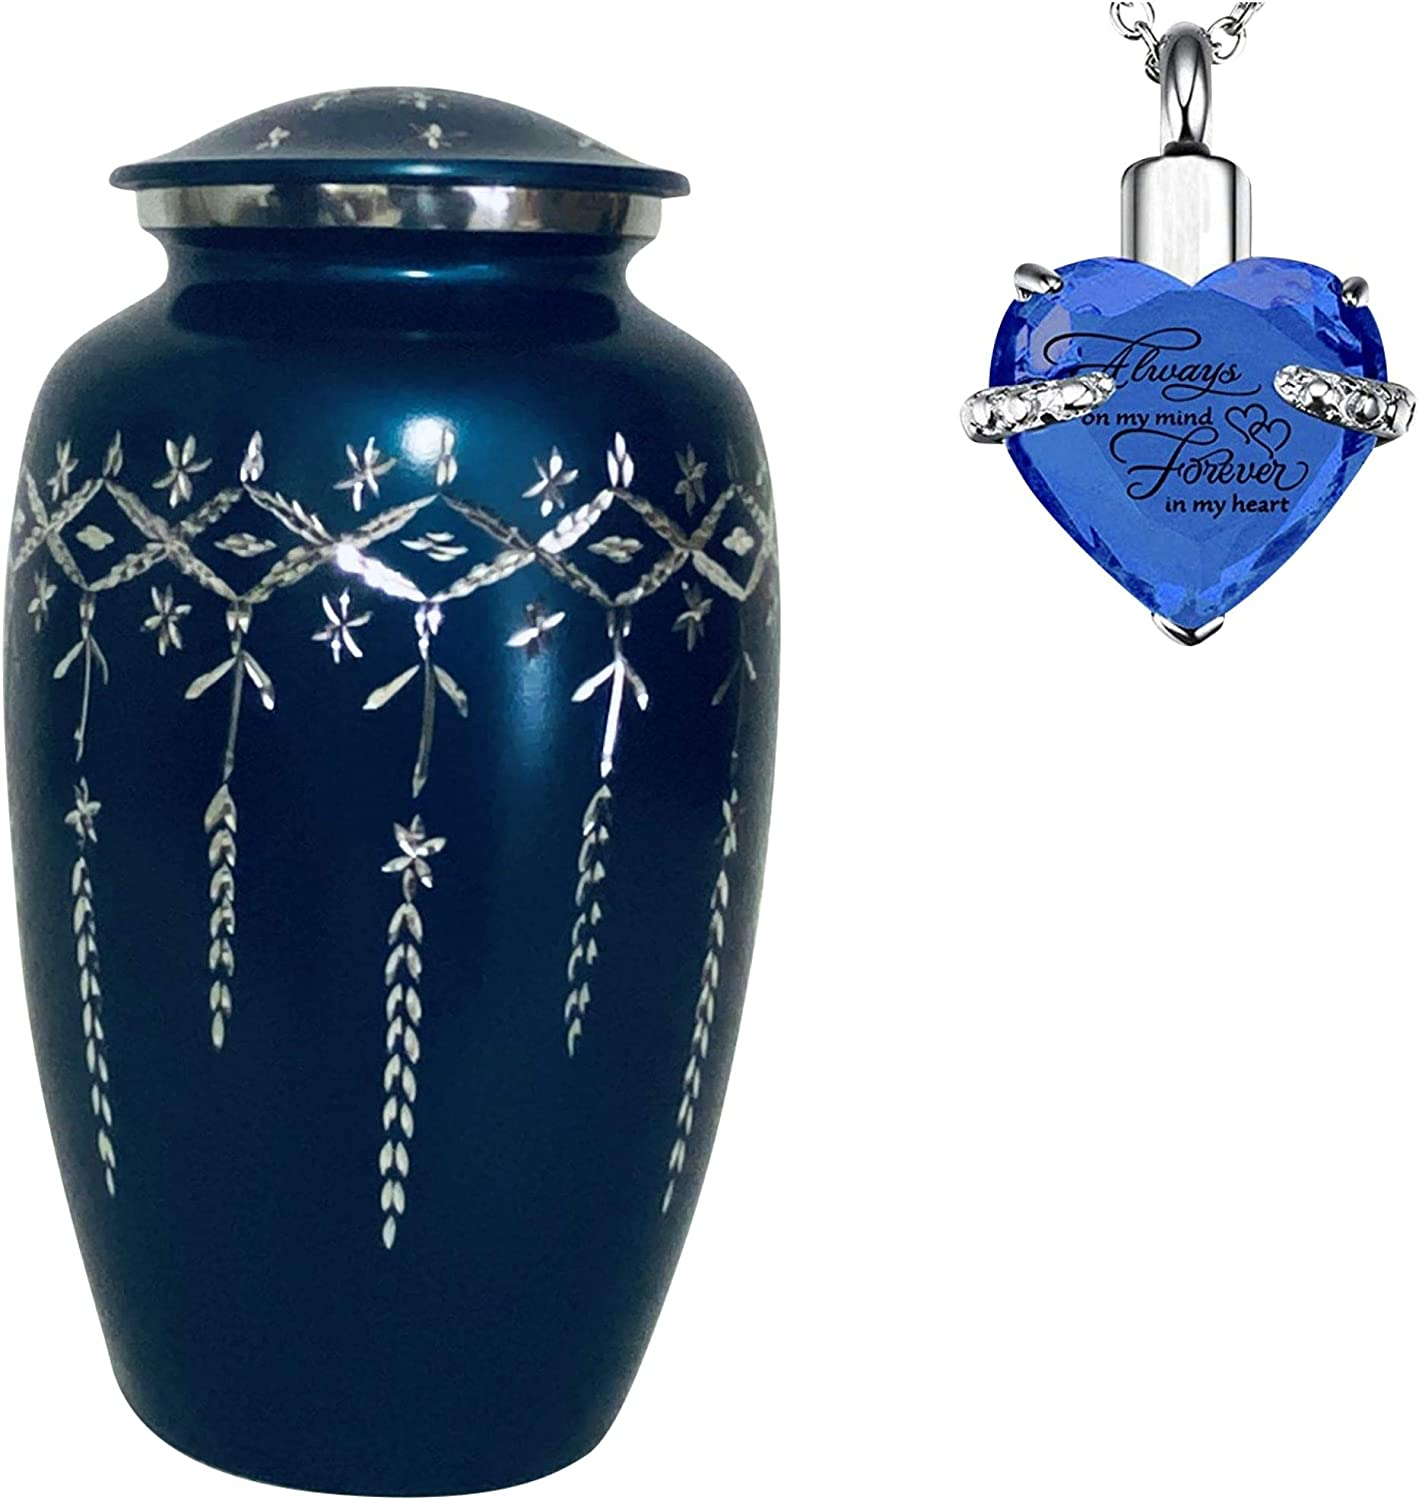 Decorative Urns for Human Ashes Adult Cremains Urns for Adult Ash for male father dad mother women daughter children pet dog cat bird burial urn to your loved one as funeral earns daddy